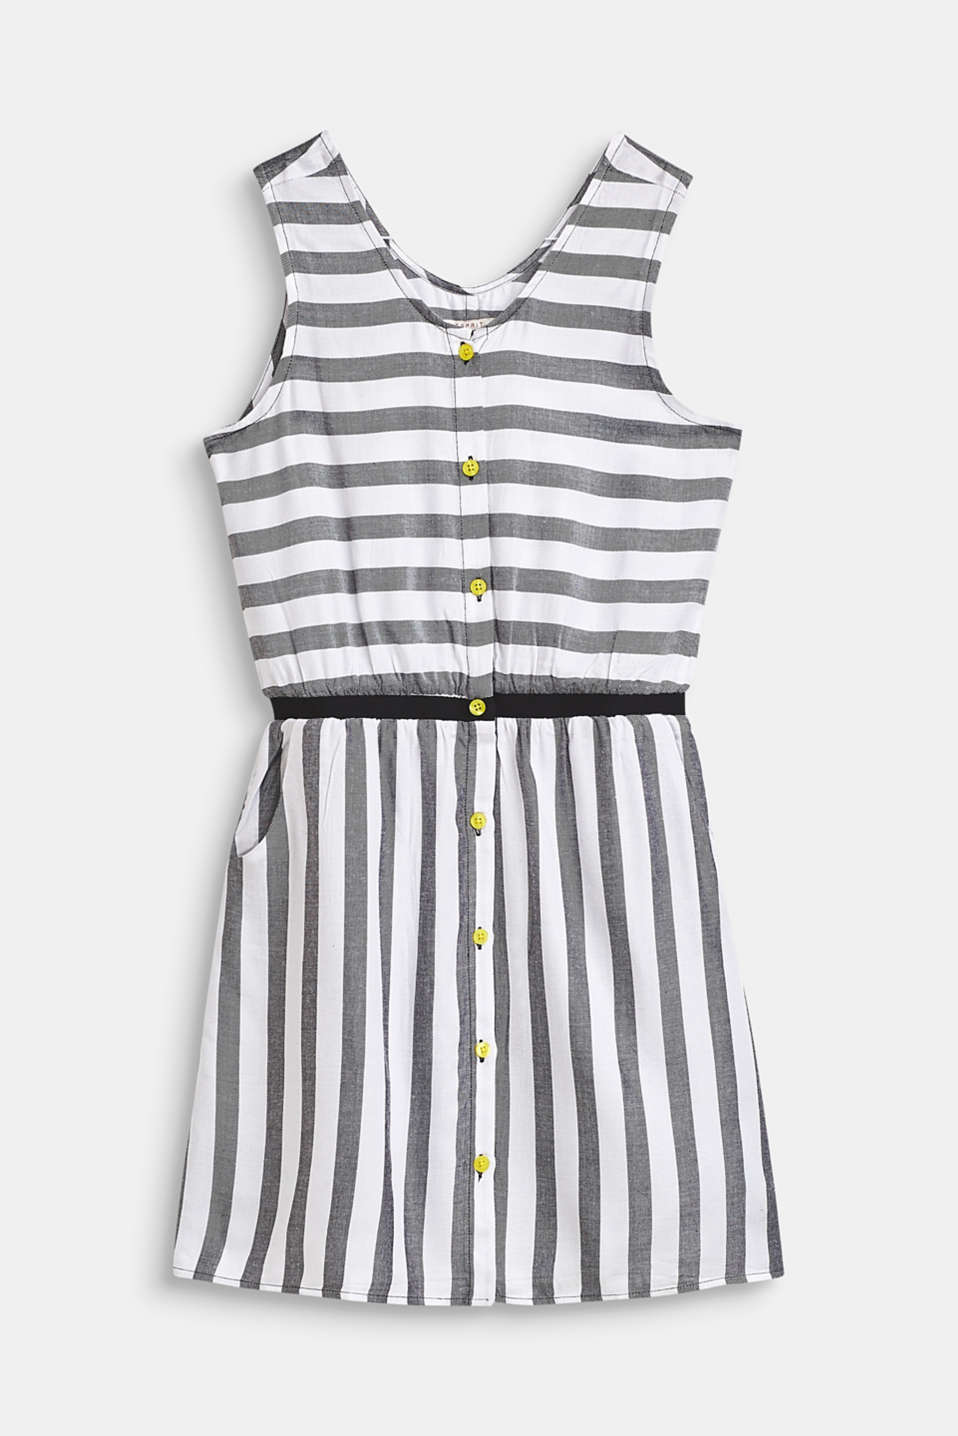 Esprit - Flowing, woven dress with a striped pattern